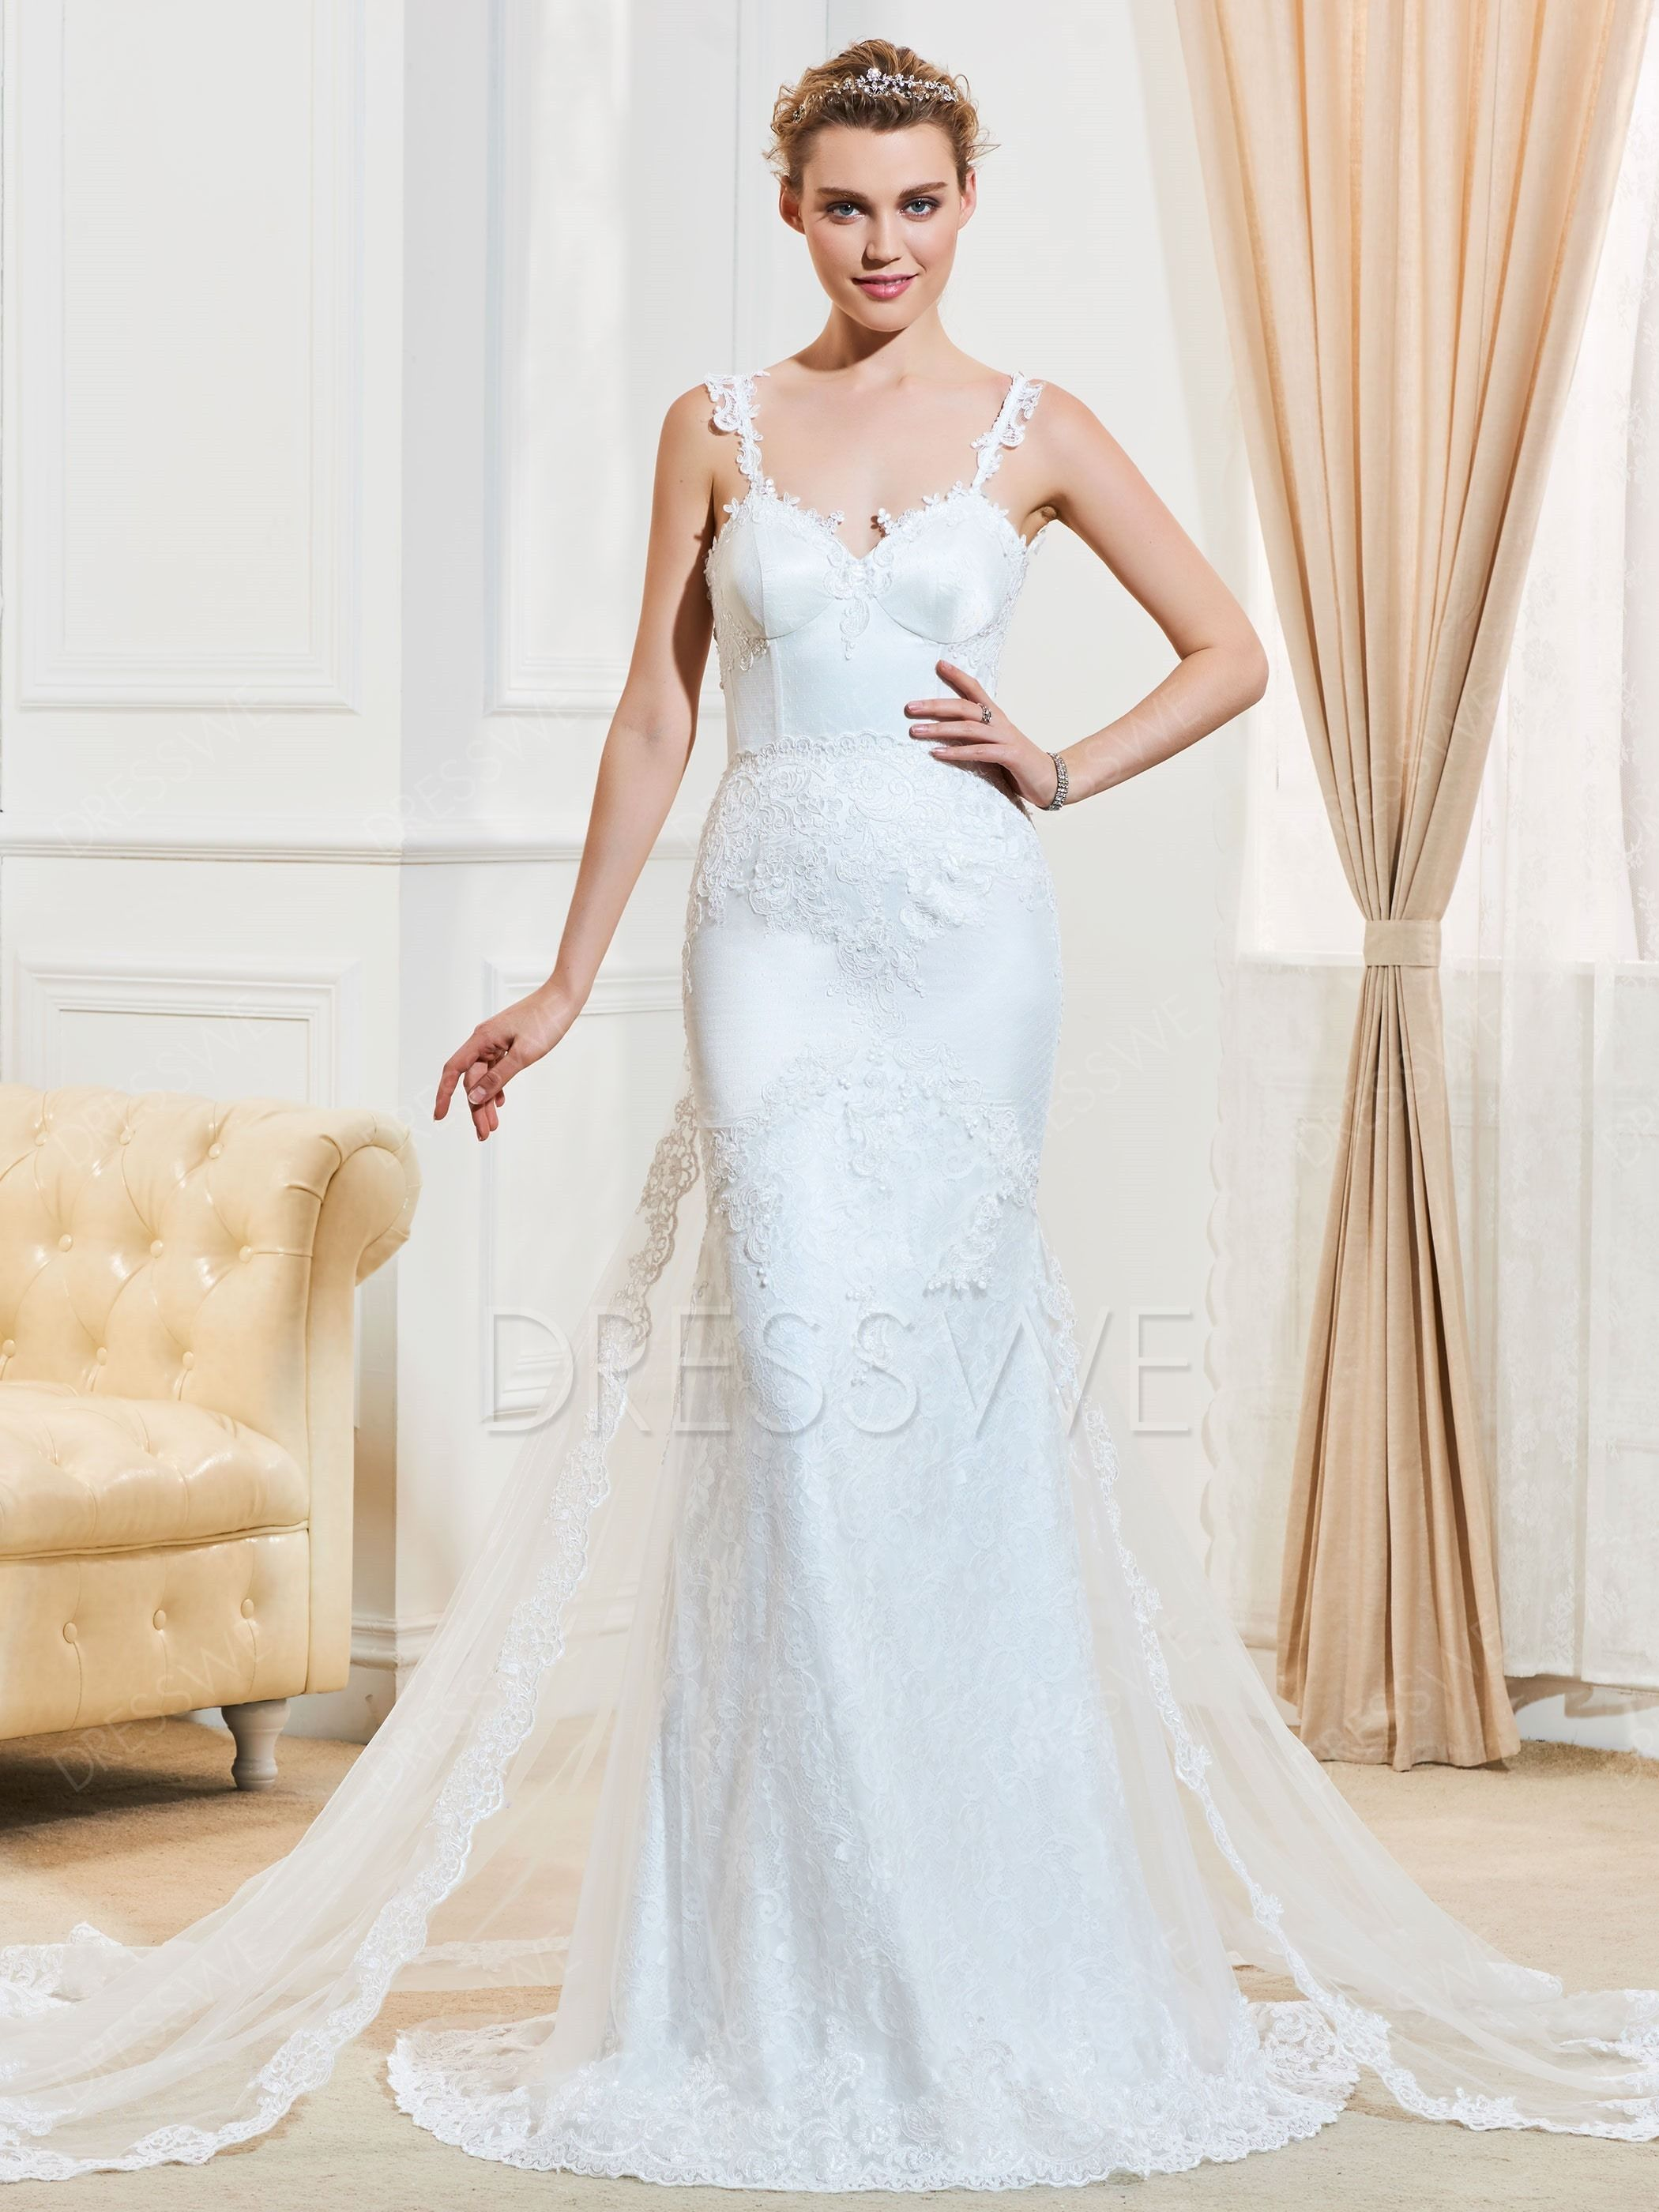 Wedding dress without train   Dresswe SUPPLIES Spaghetti Straps Lace Watteau Train